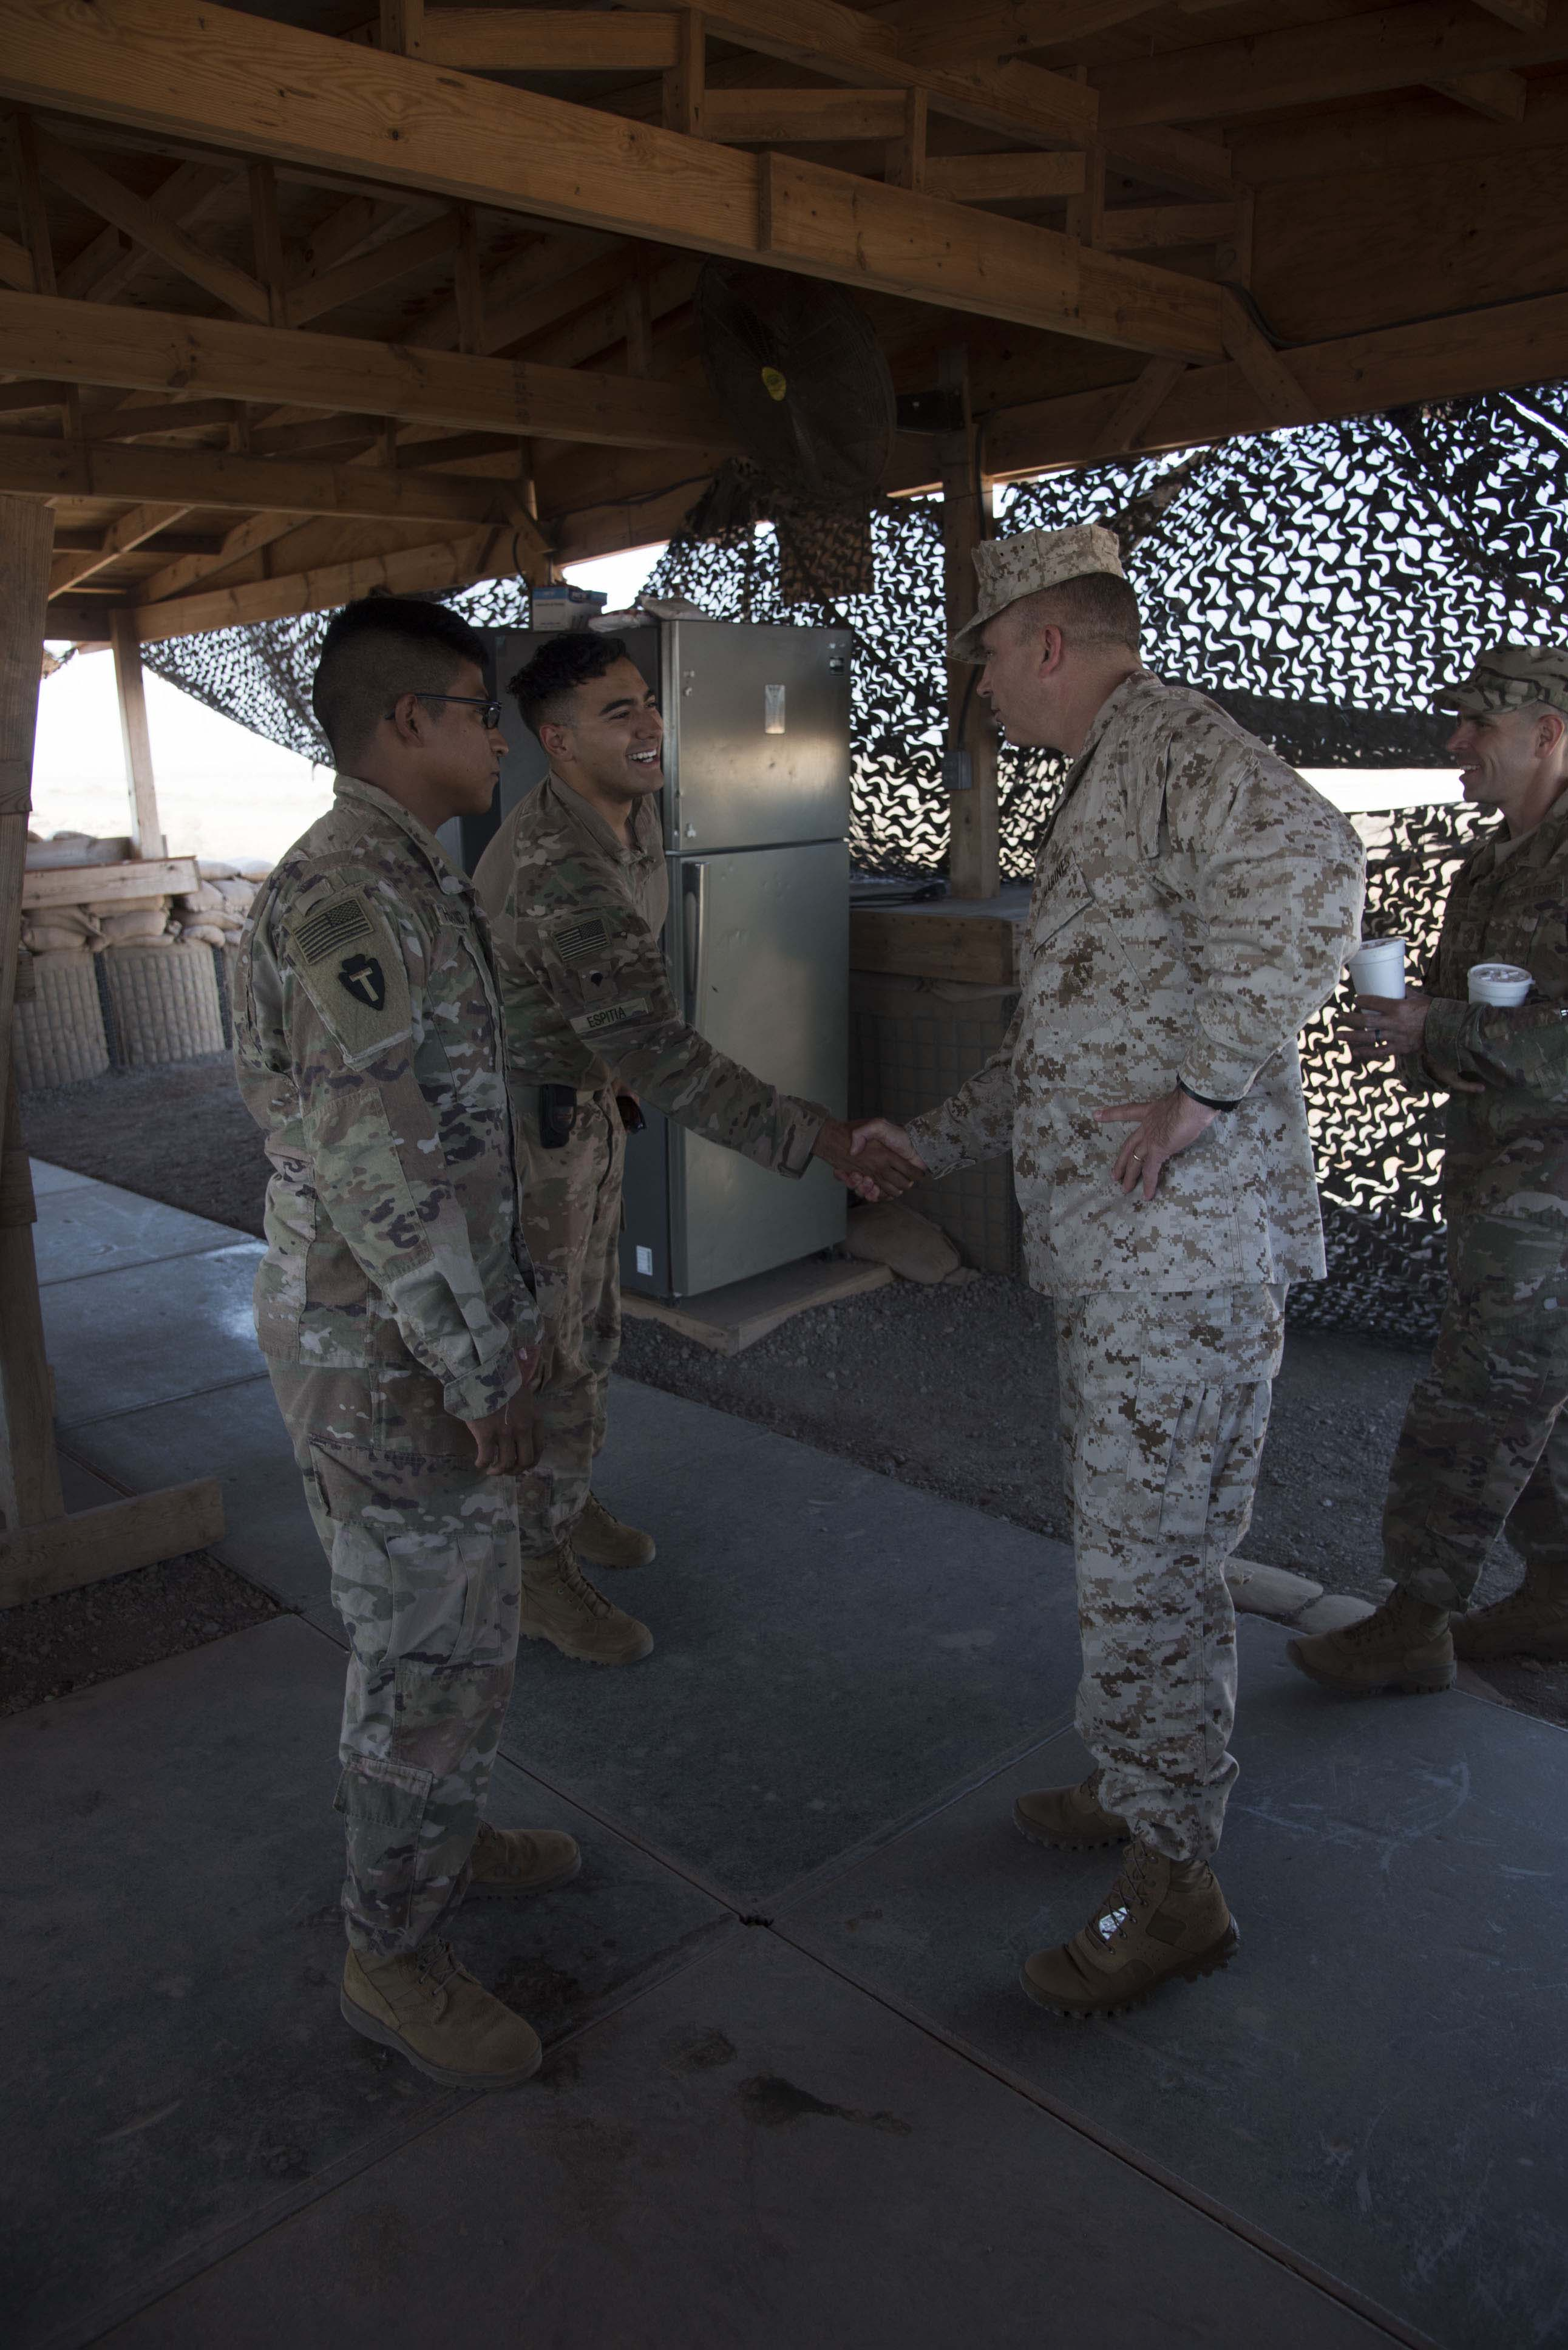 U.S. Marine Corps Brig. Gen. David J. Furness, commander of Combined Joint Task Force – Horn of Africa, and U.S. Air Force Command Chief Master Sgt. Benjamin J. Higginbotham, command senior enlisted leader of CJTF-HOA, serve lunch and visit with troops in Chebelley, Djibouti, Dec. 25, 2017.  The leaders spent the afternoon  meeting with service members and thanking them for their continued service and sacrifice throughout the holiday season. (U.S. Air National Guard photo by Staff Sgt. Allyson L. Manners)